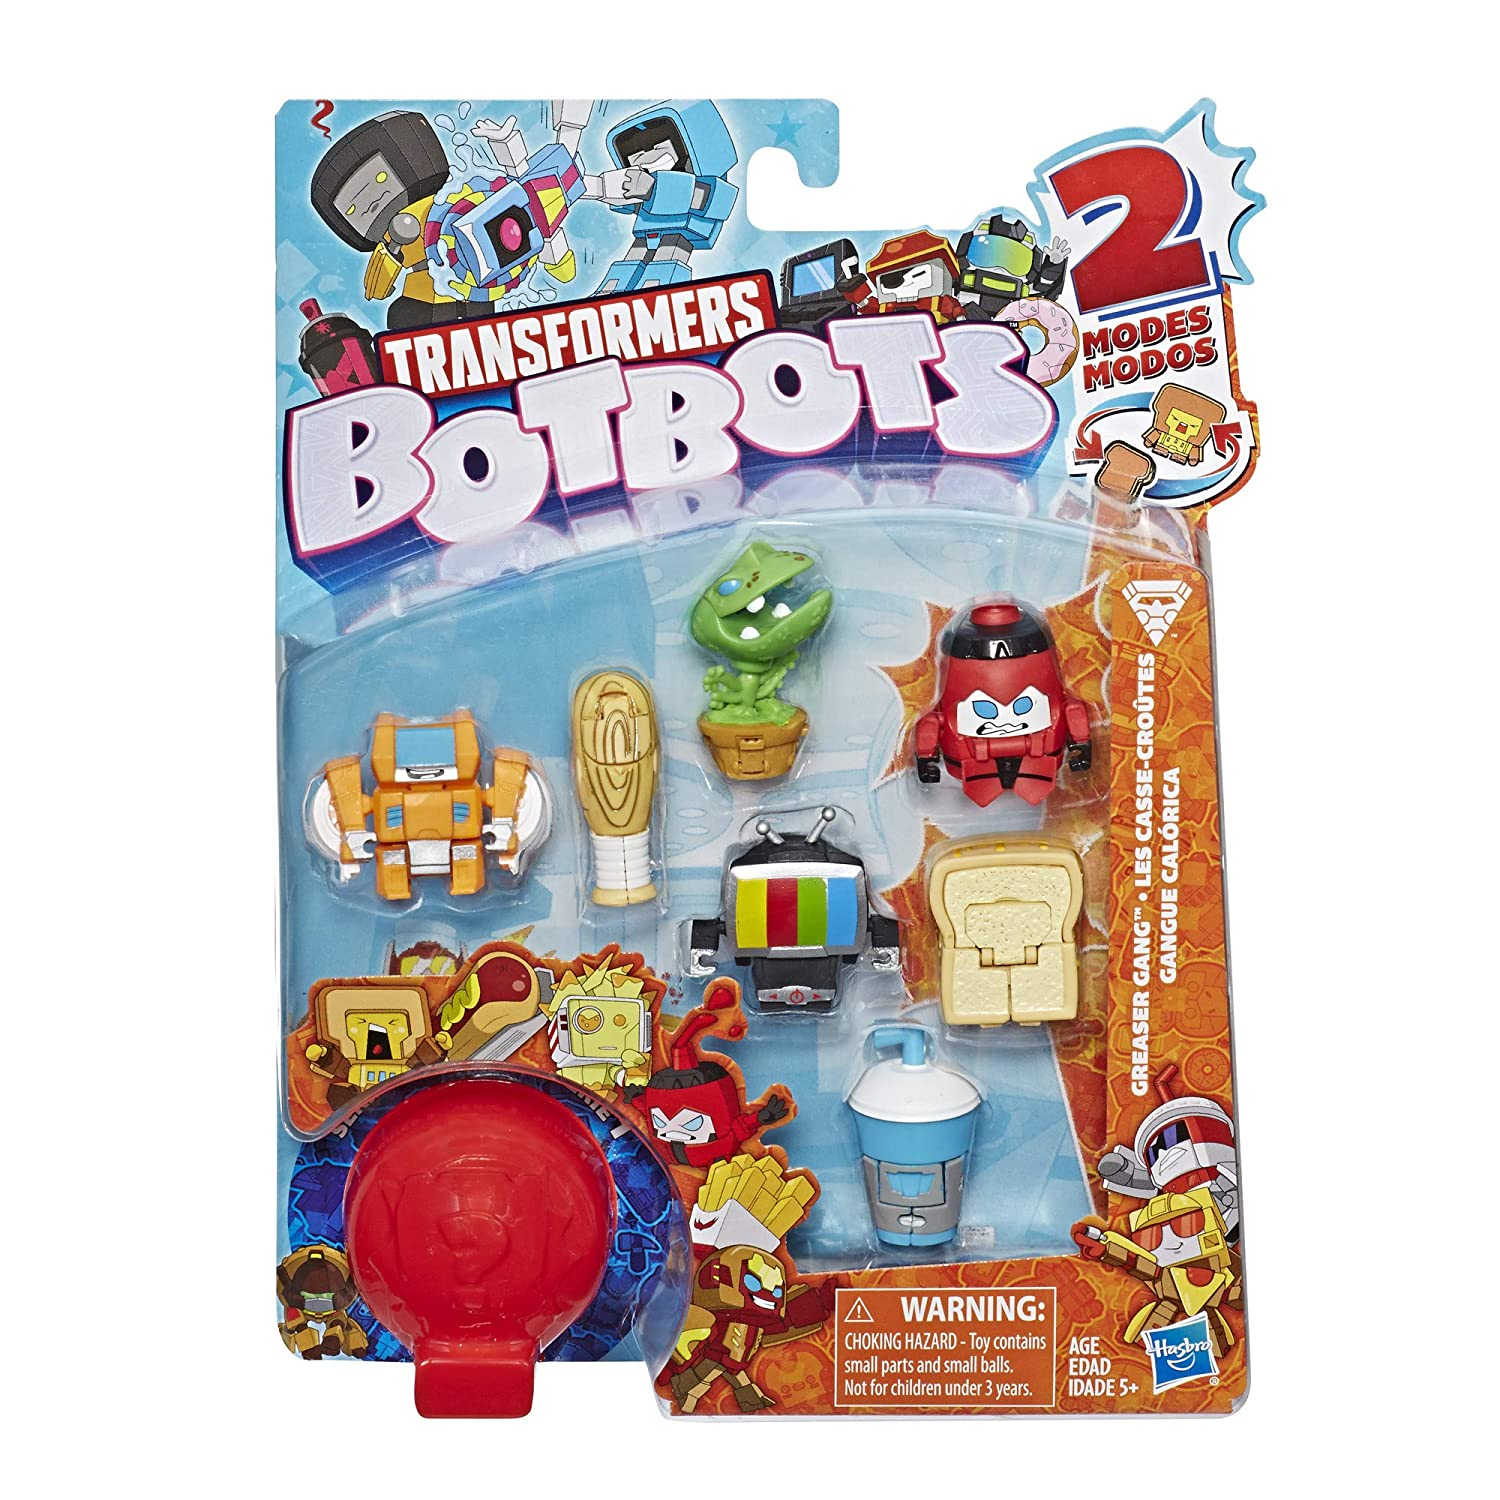 Hasbro E4143AS00 Transformers BotBots Toys Series 1 Greaser Gang 8-Pack Mystery 2-in-1 Collectible Figures